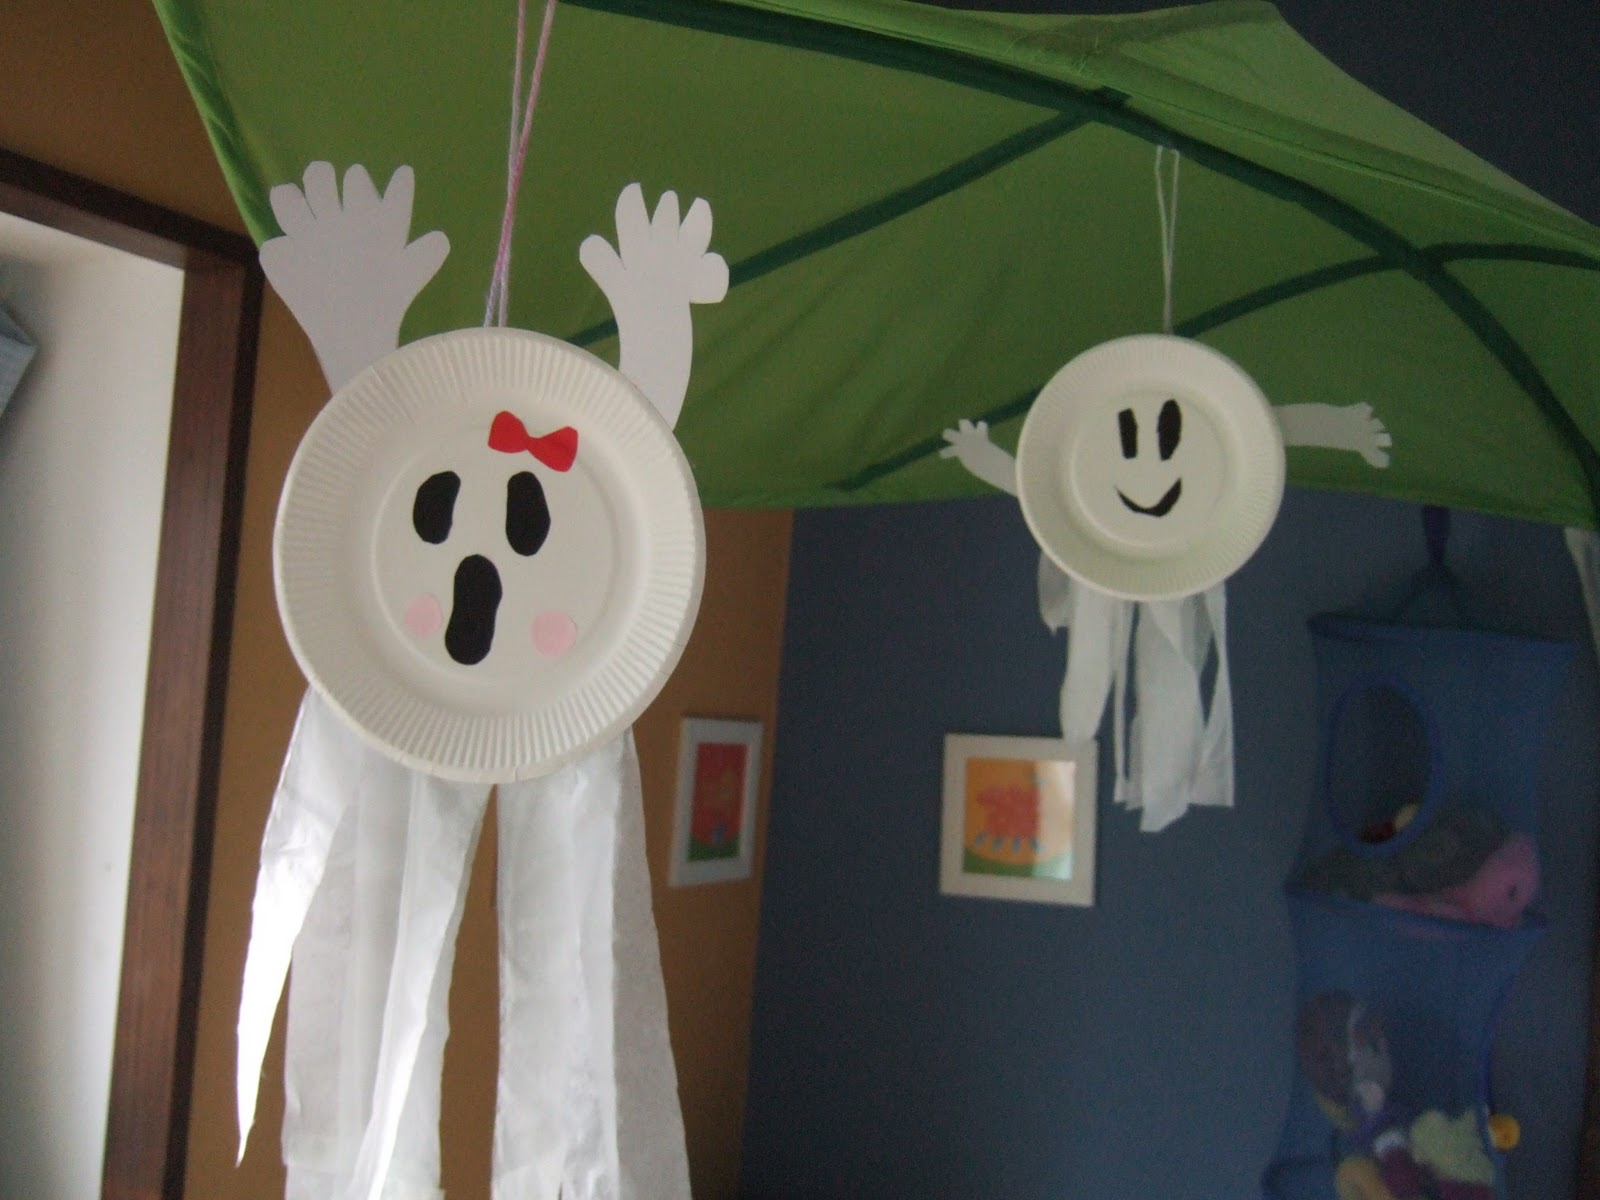 Fill your house with these easy-to-make crafts and decorations, perfect for Halloweeen. 50 Eerily Easy Halloween Craft Ideas. Pumpkin season is officially here. By Caroline Picard.